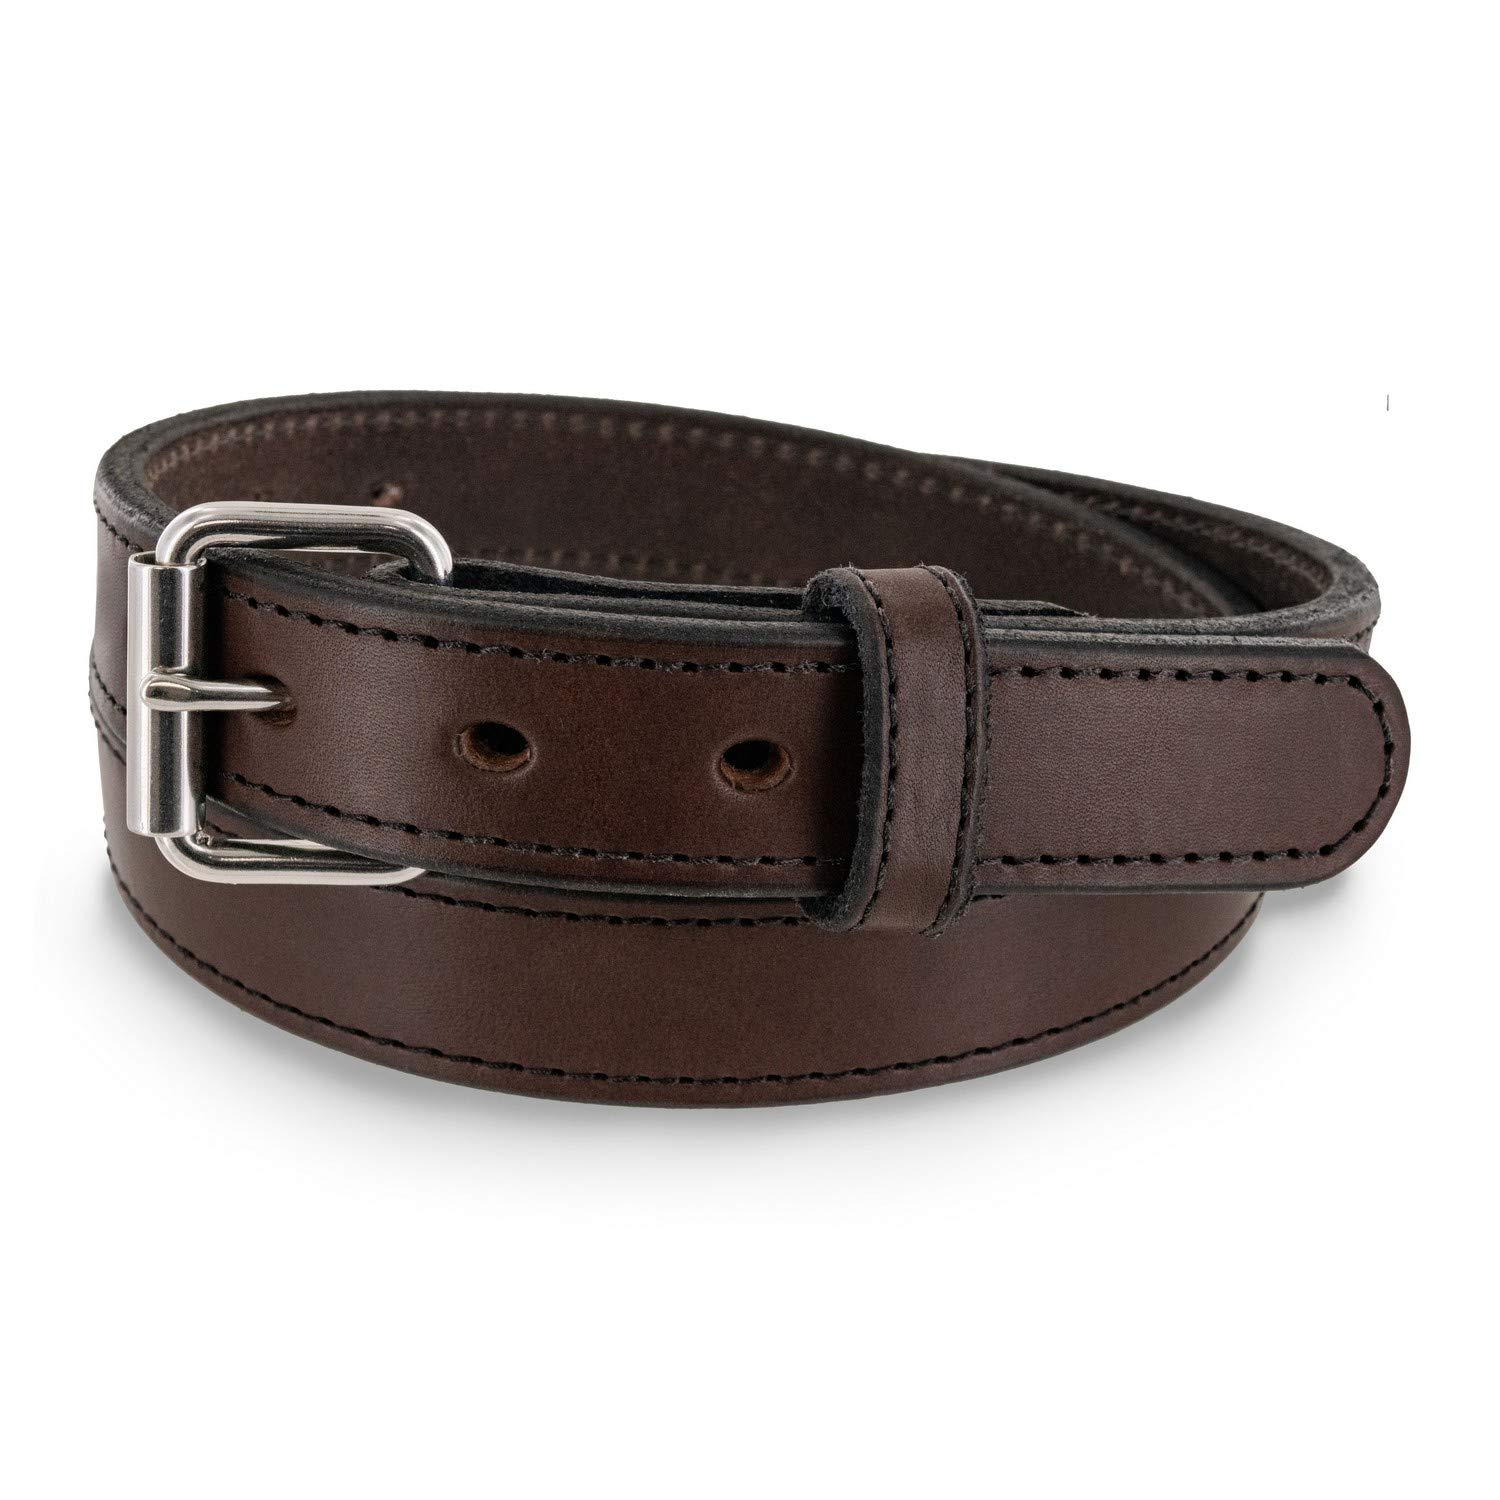 USA Made 100 Year Warranty Hanks 17oz Extreme Belt 1.25 Wide